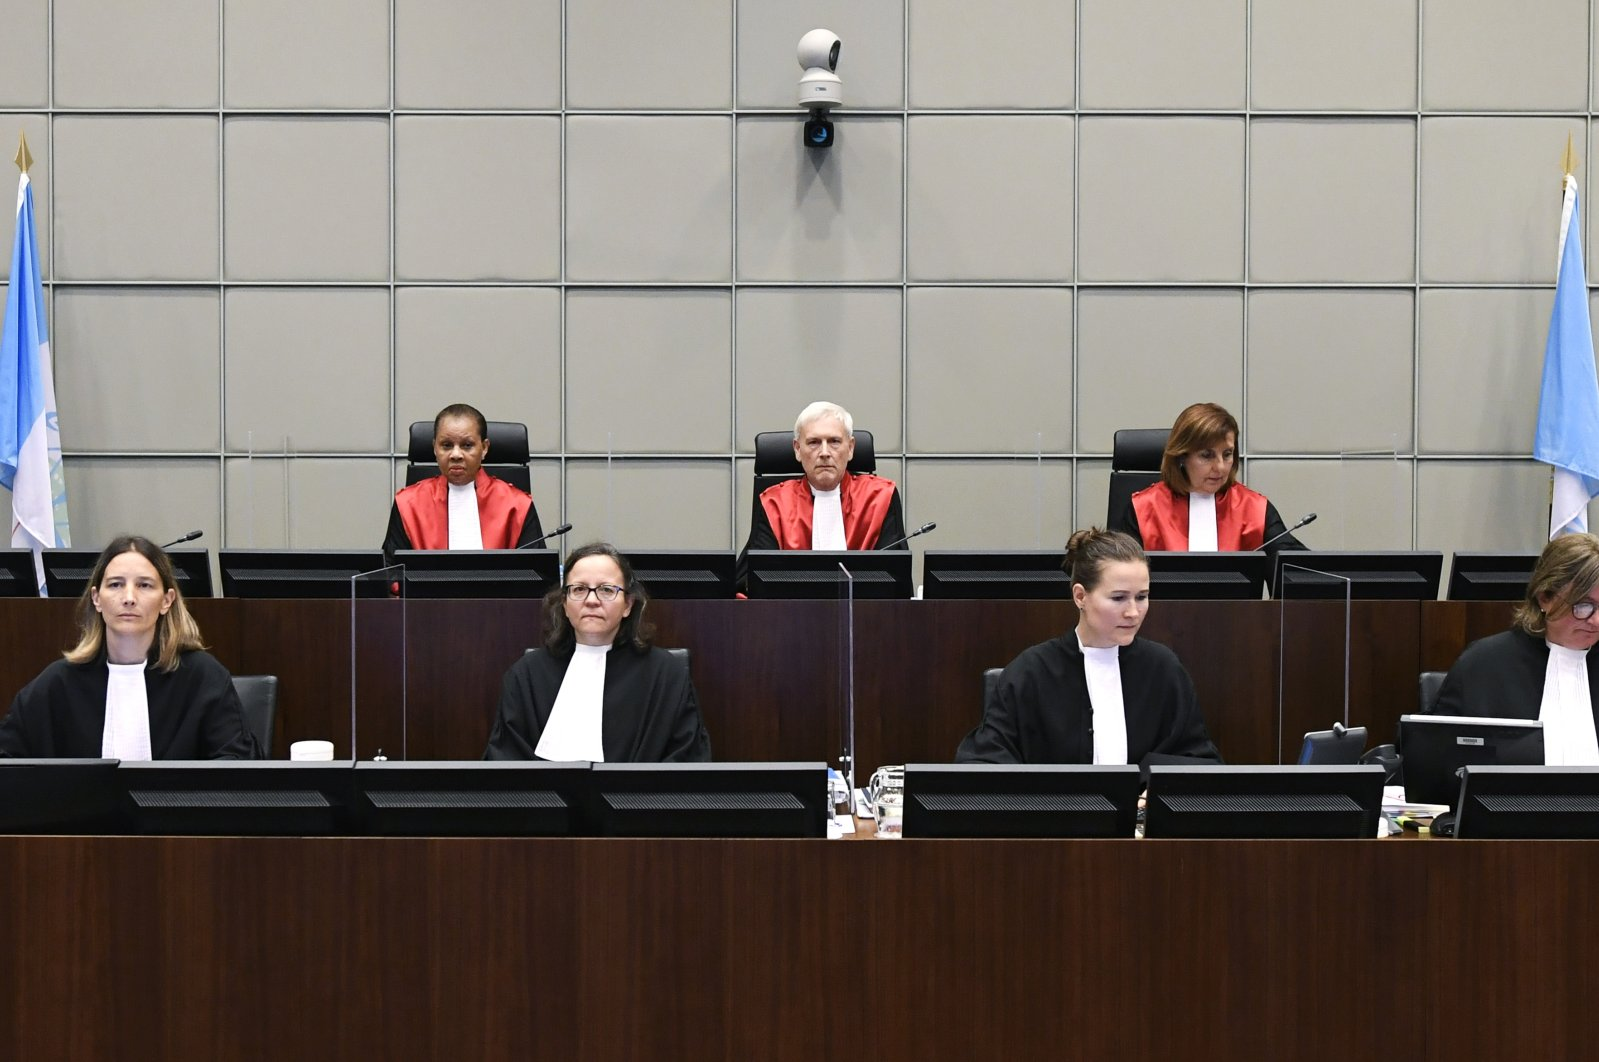 Judges are seen during a session of the United Nations-backed Lebanon Tribunal in Leidschendam, the Netherlands, Aug. 18, 2020. (AP Photo)